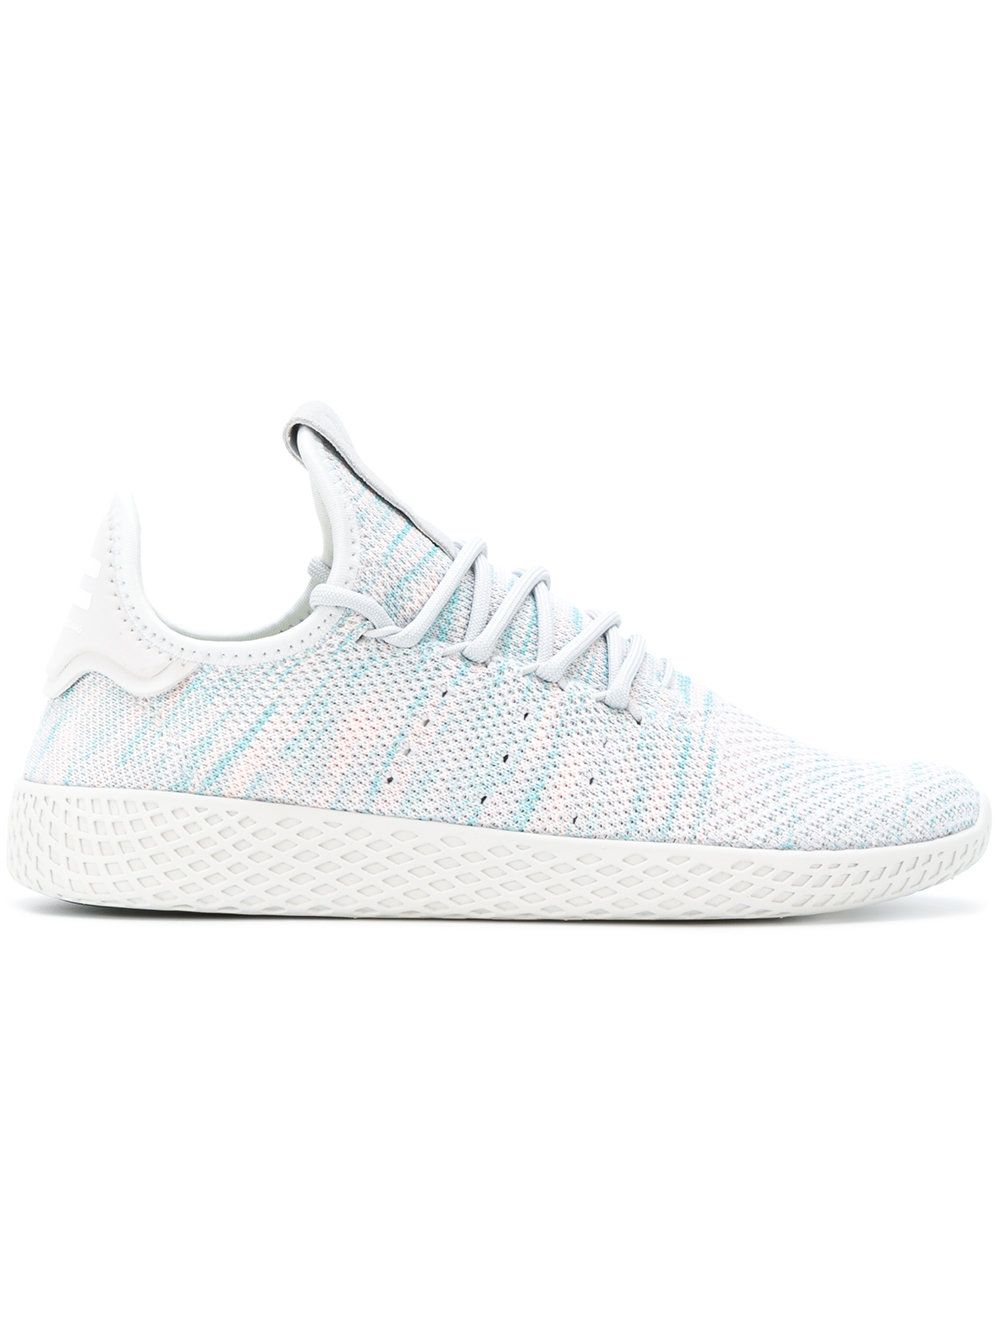 newest 779d3 da5d4 ADIDAS BY PHARRELL WILLIAMS   Adidas Originals by Pharrell Williams Tennis  HU sneakers  Shoes